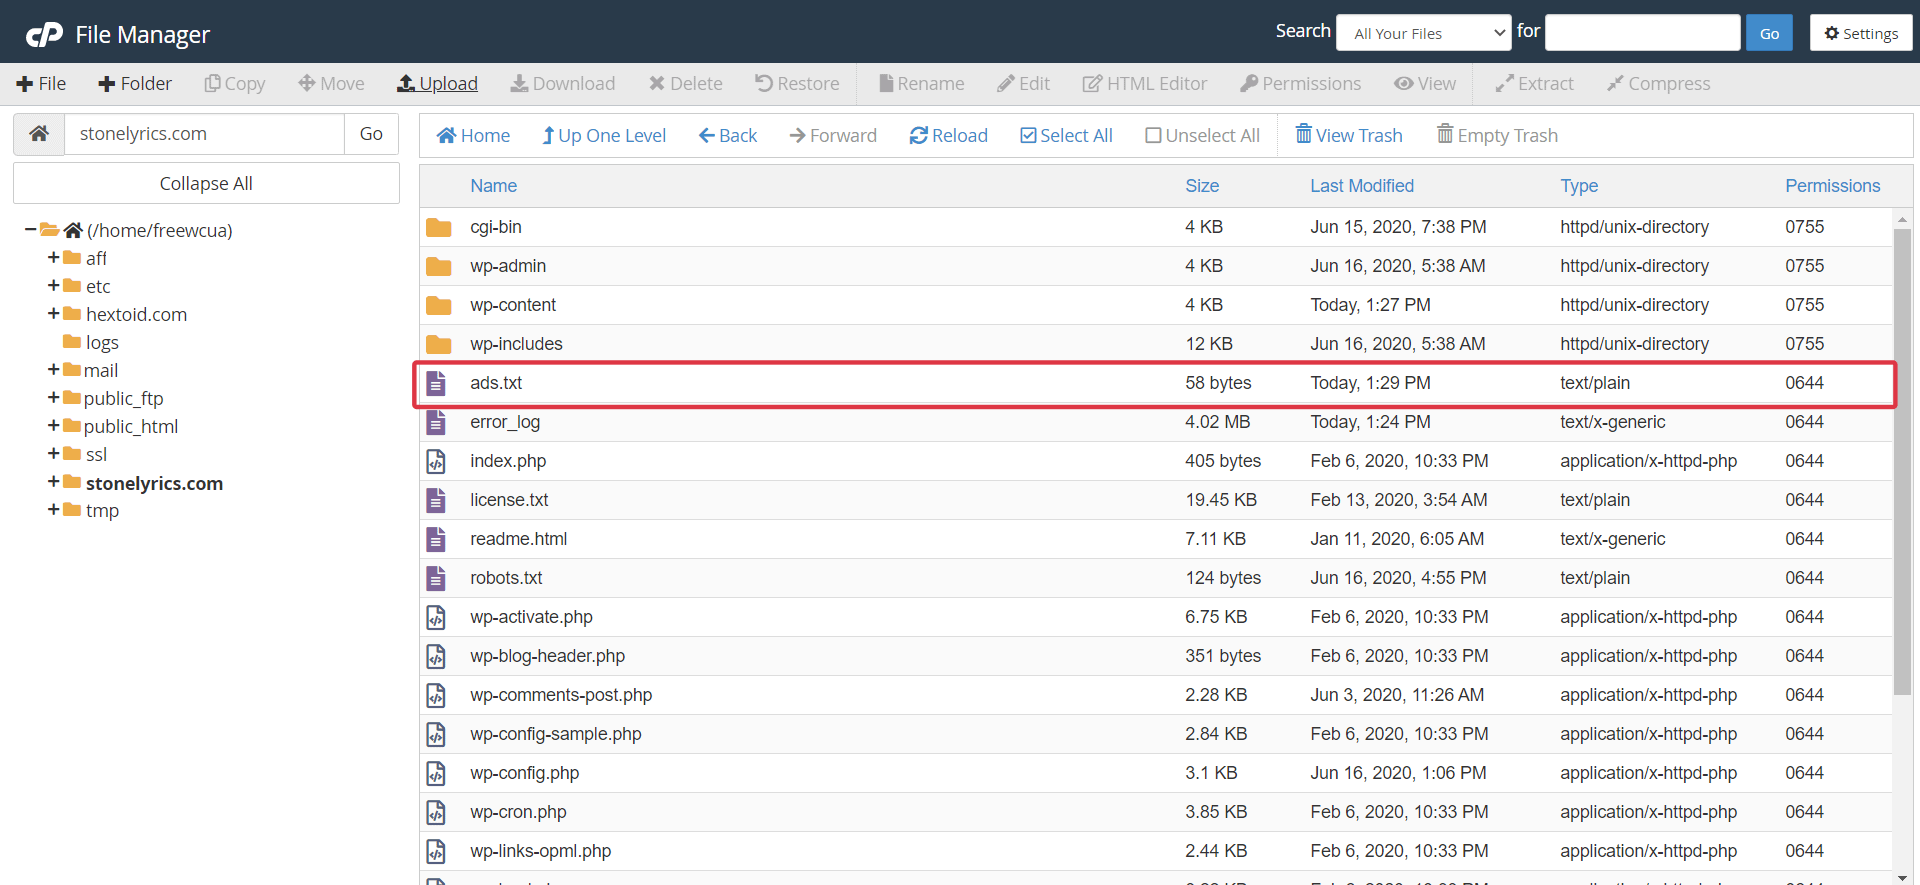 Ads.txt file is available in the hosting